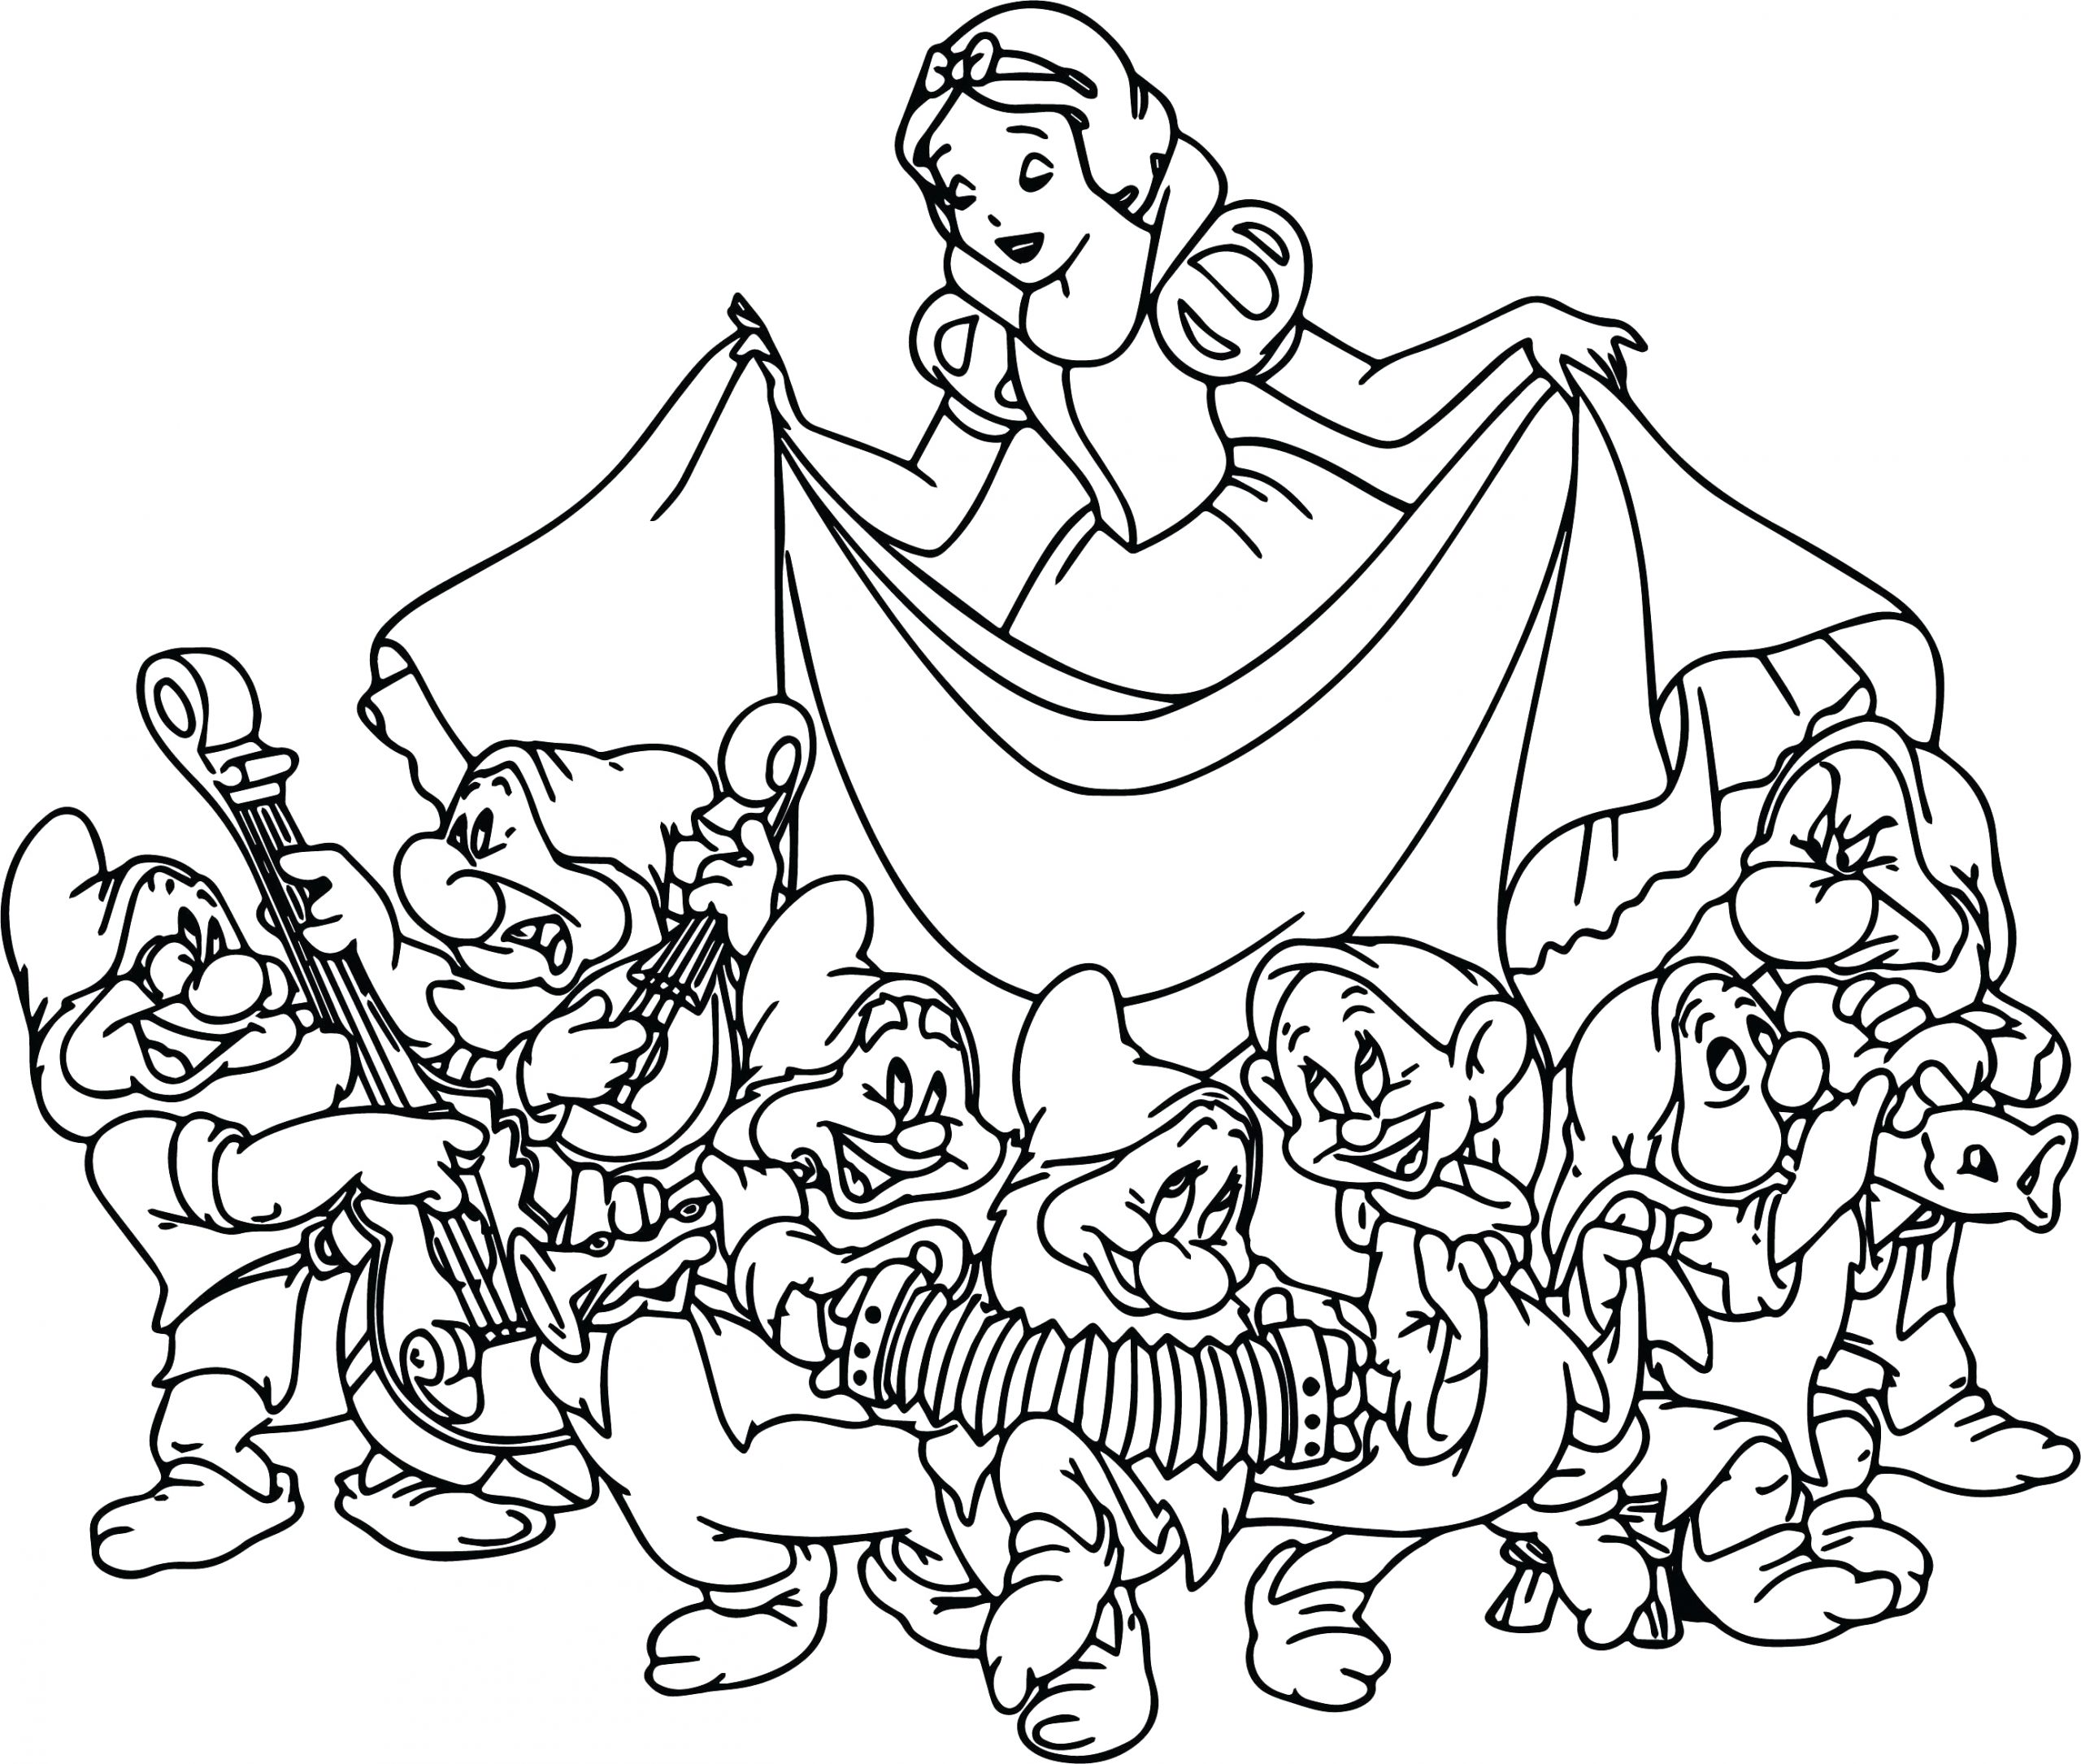 Snow White and the Seven Dwarfs Coloring Pages 7 Dwarfs Coloring Pages